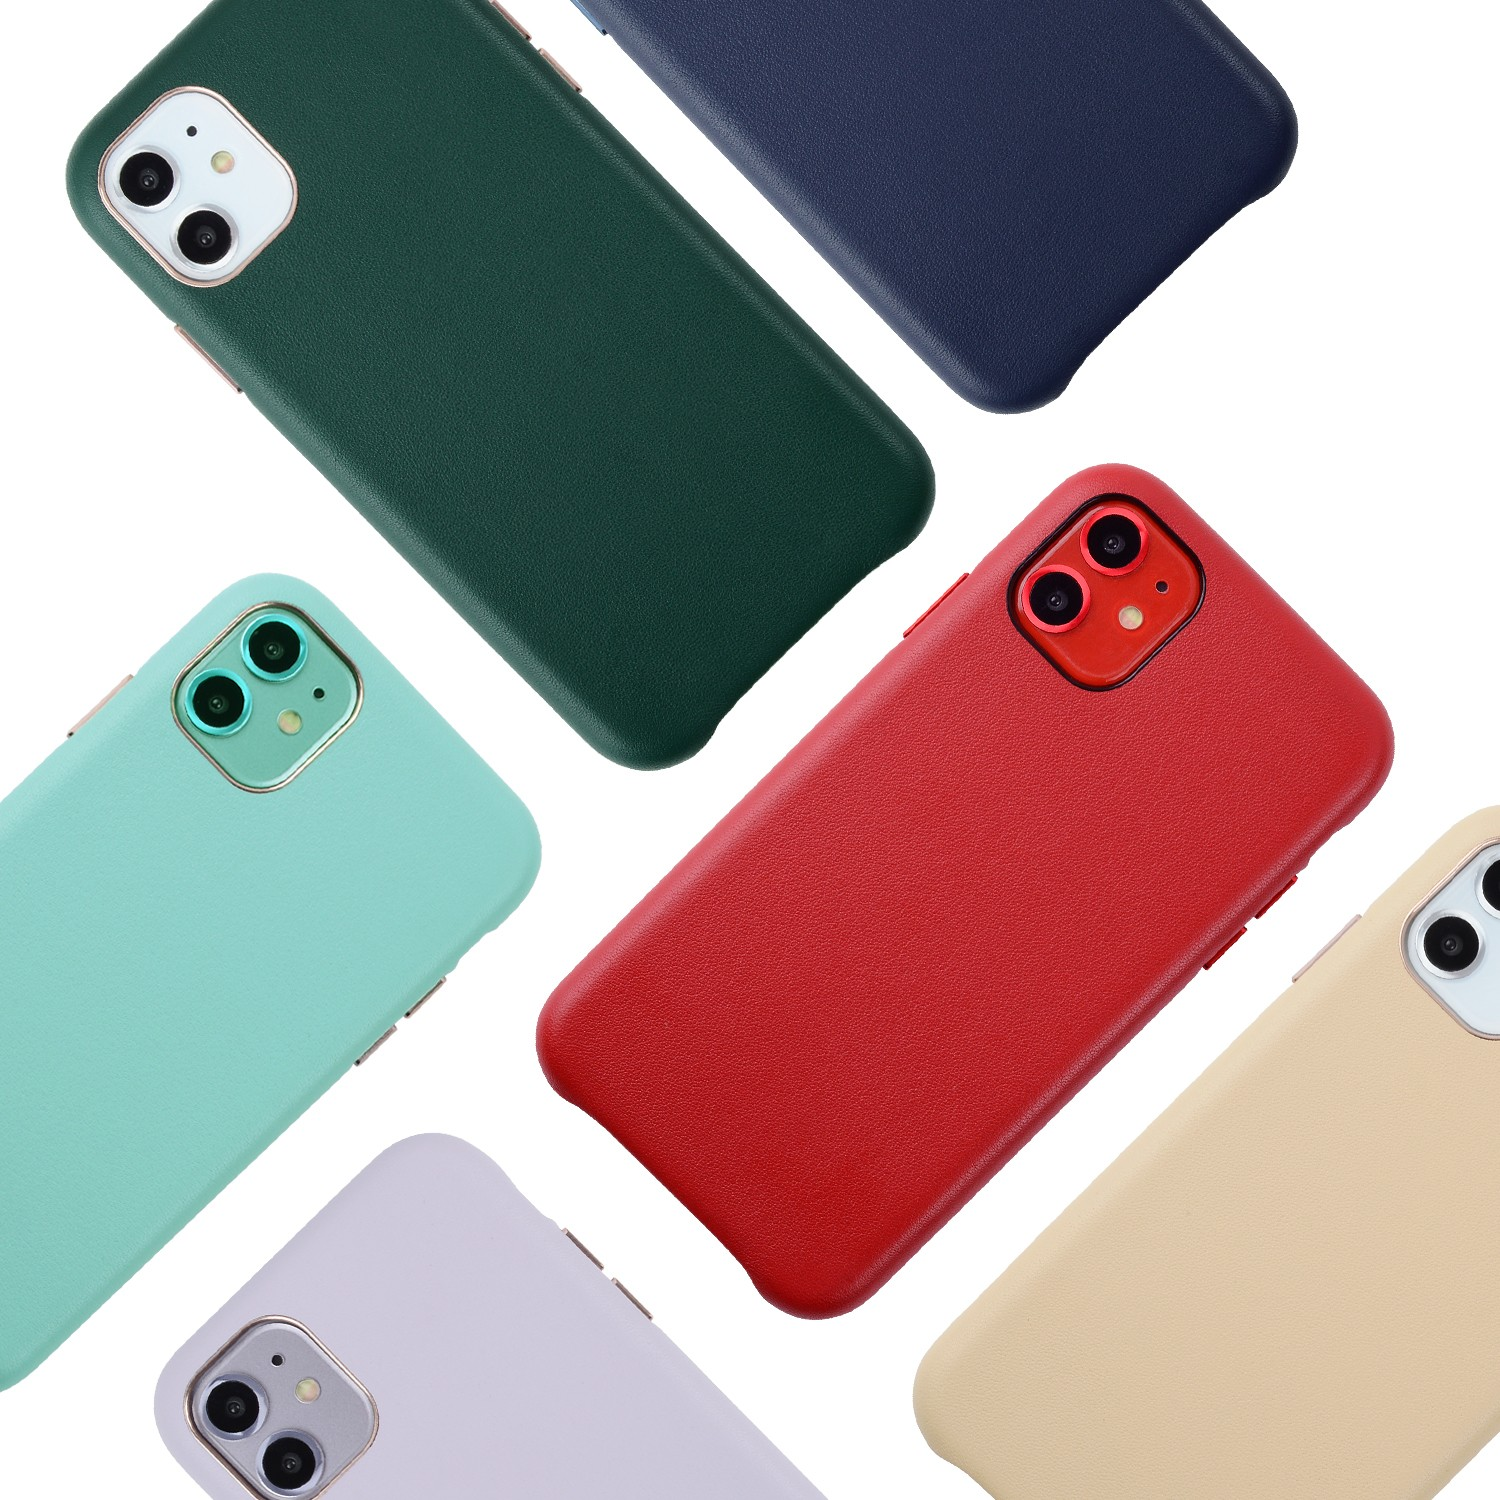 AIVI popular mobile back cover for iPhone 11 promotion for iPhone-9